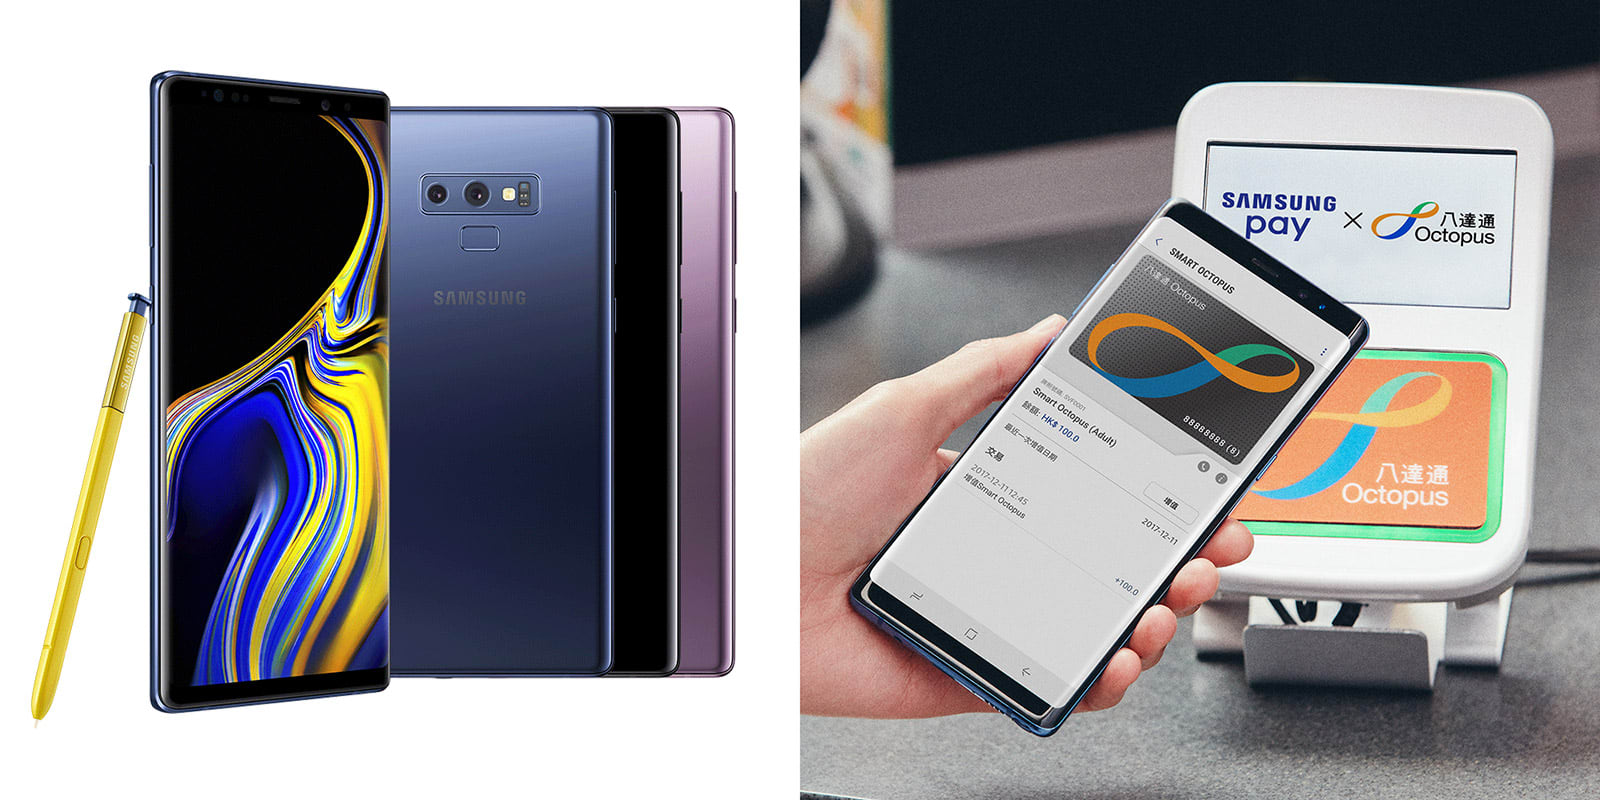 Samsung Galaxy Note 9 and Samsung Pay via Octopus